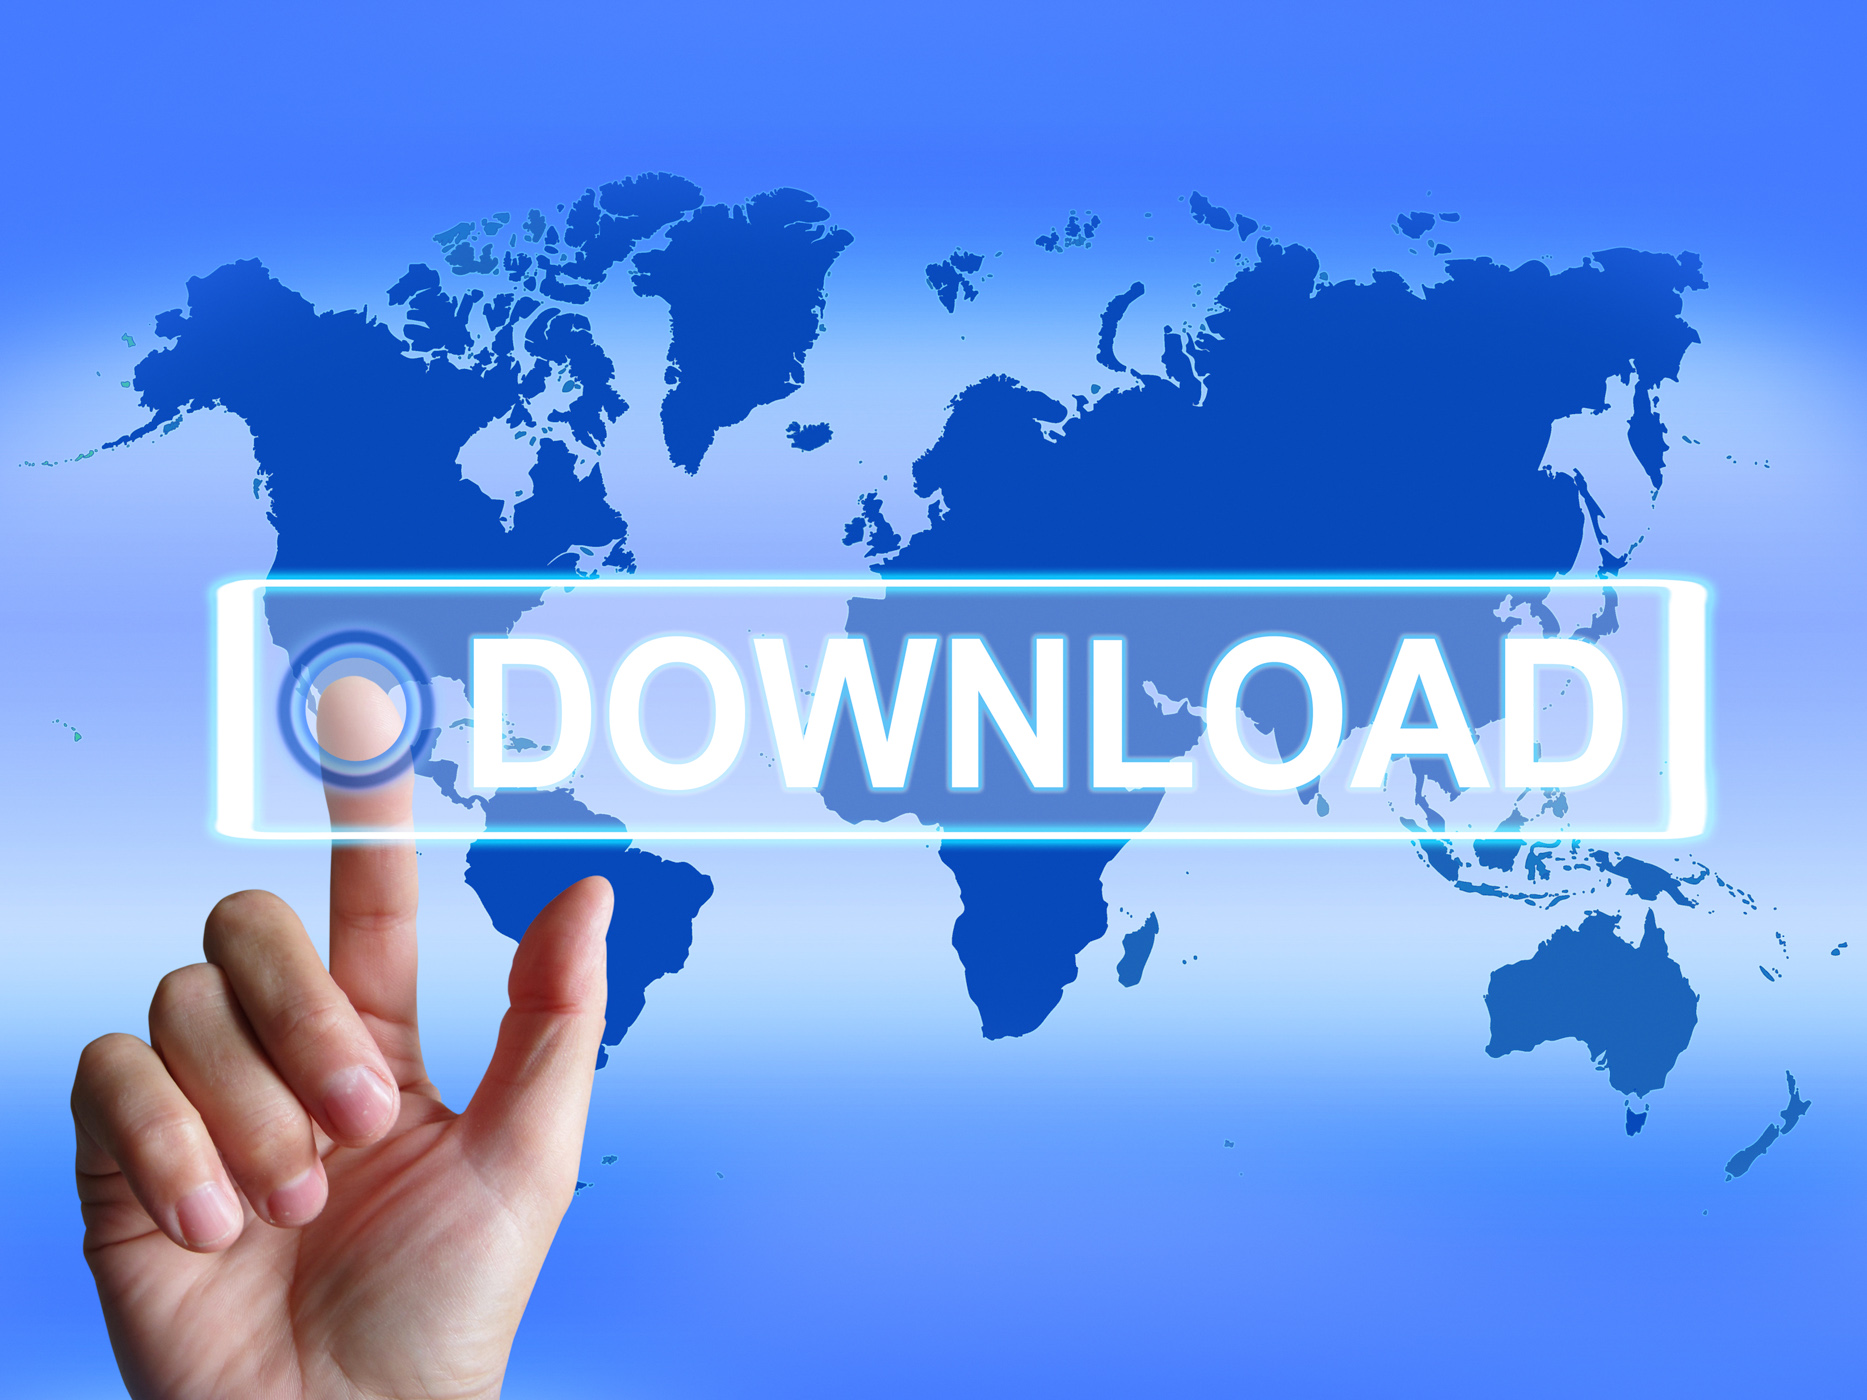 Download Map Shows Downloads Downloading and Internet Transfer, Computer, Map, Transferfile, Transferdata, HQ Photo